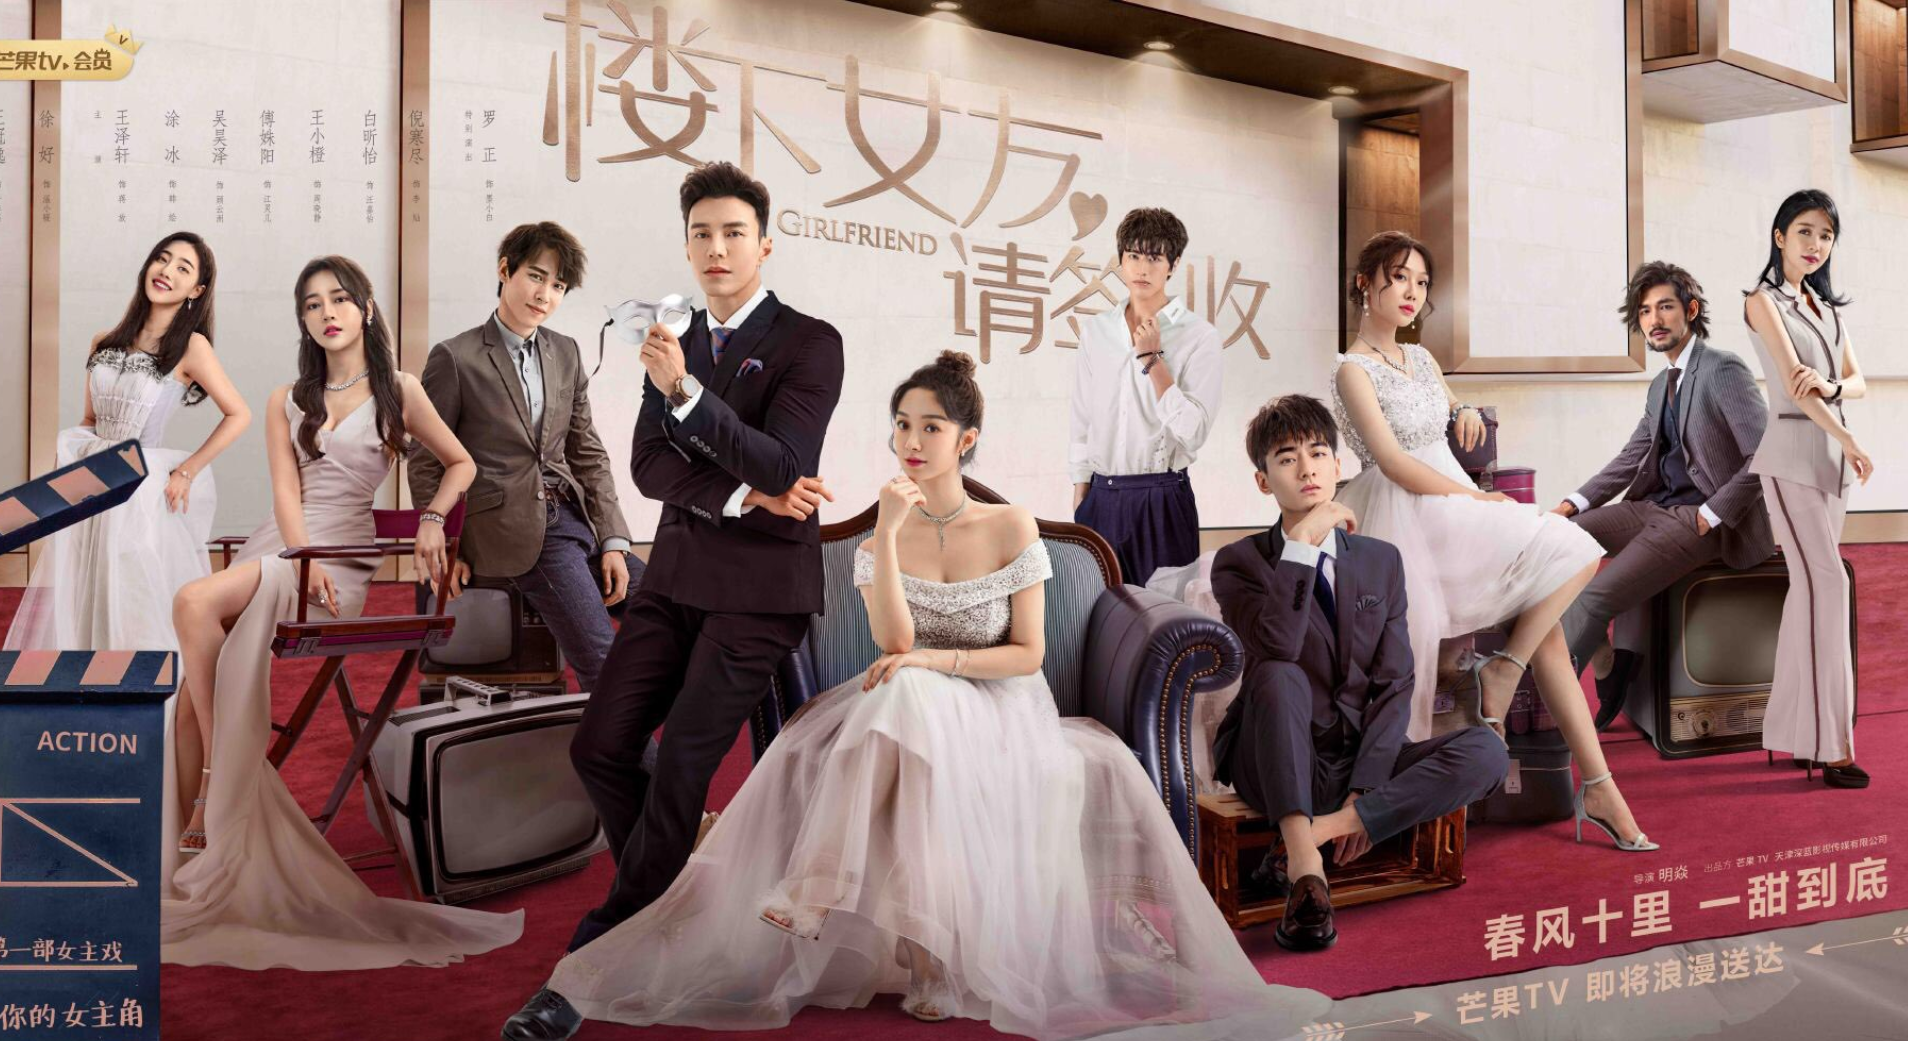 First impression: Girlfriend 楼下女友请签收 (2020) – Ahgasewatchtv